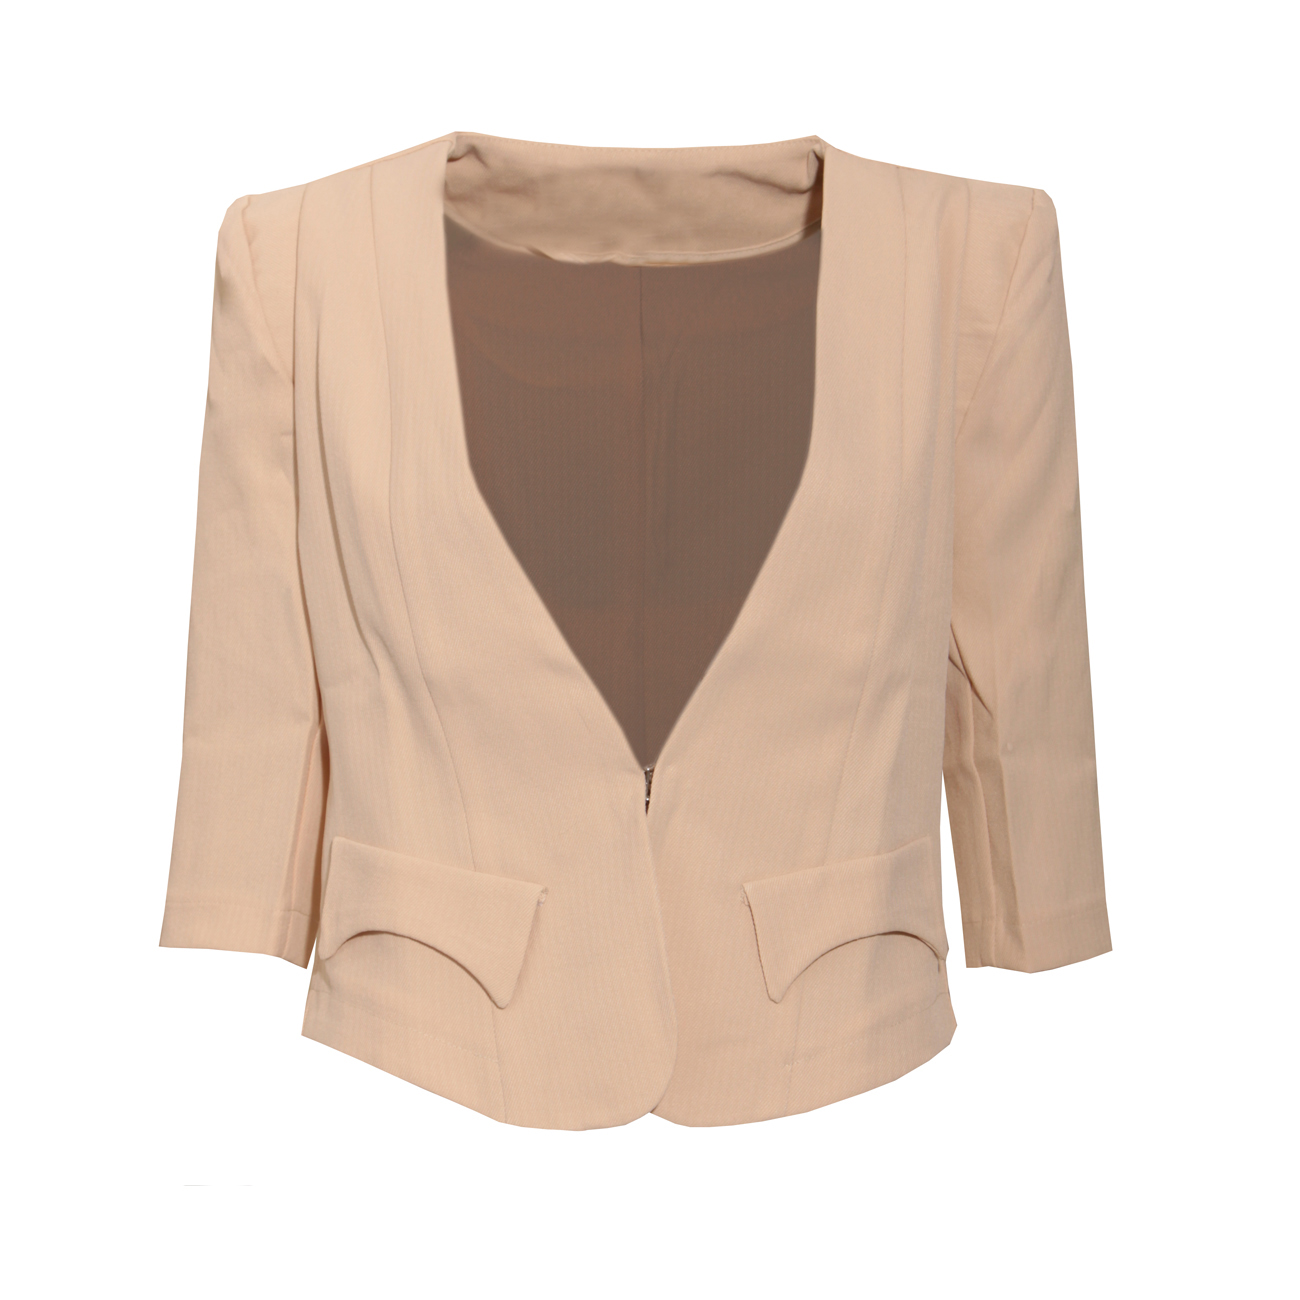 Shop our Collection of Women's Ivory/Cream Jackets at makeshop-mdrcky9h.ga for the Latest Designer Brands & Styles. FREE SHIPPING AVAILABLE!